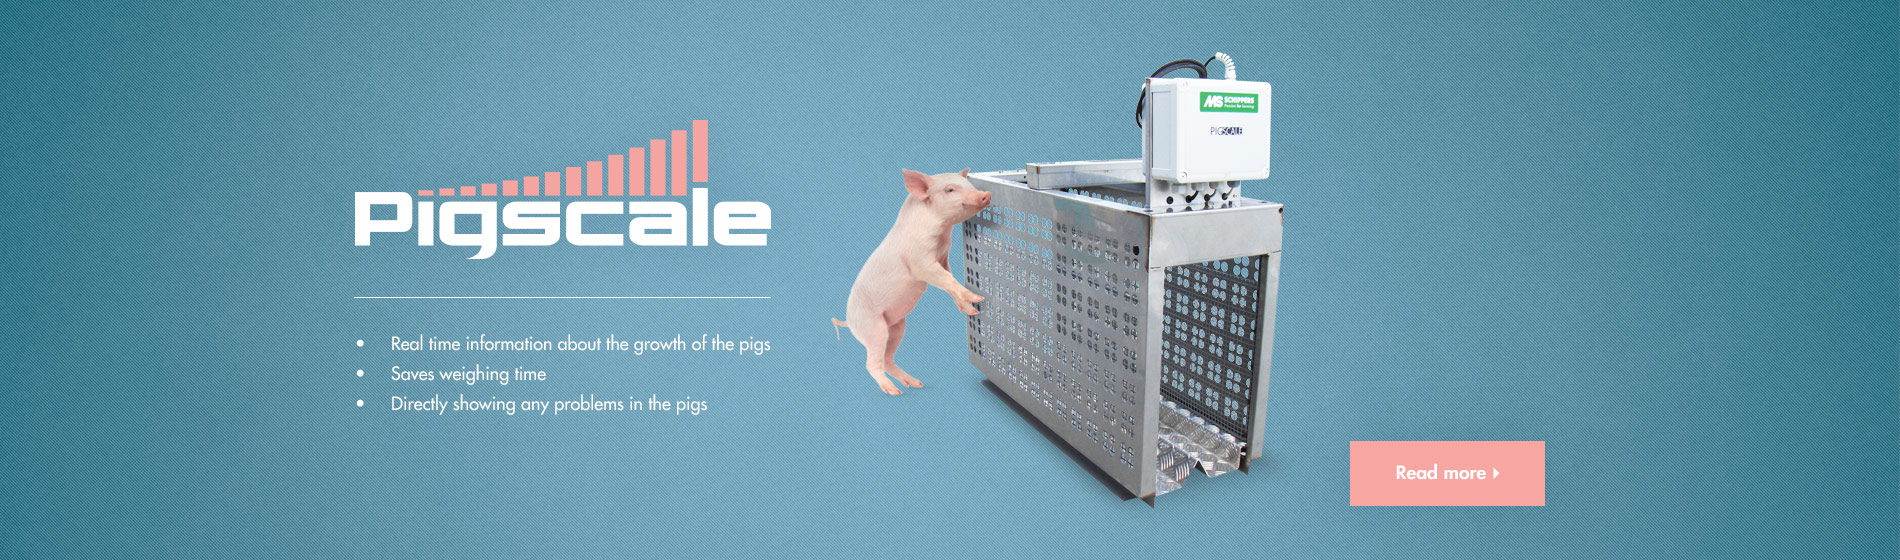 pigscale